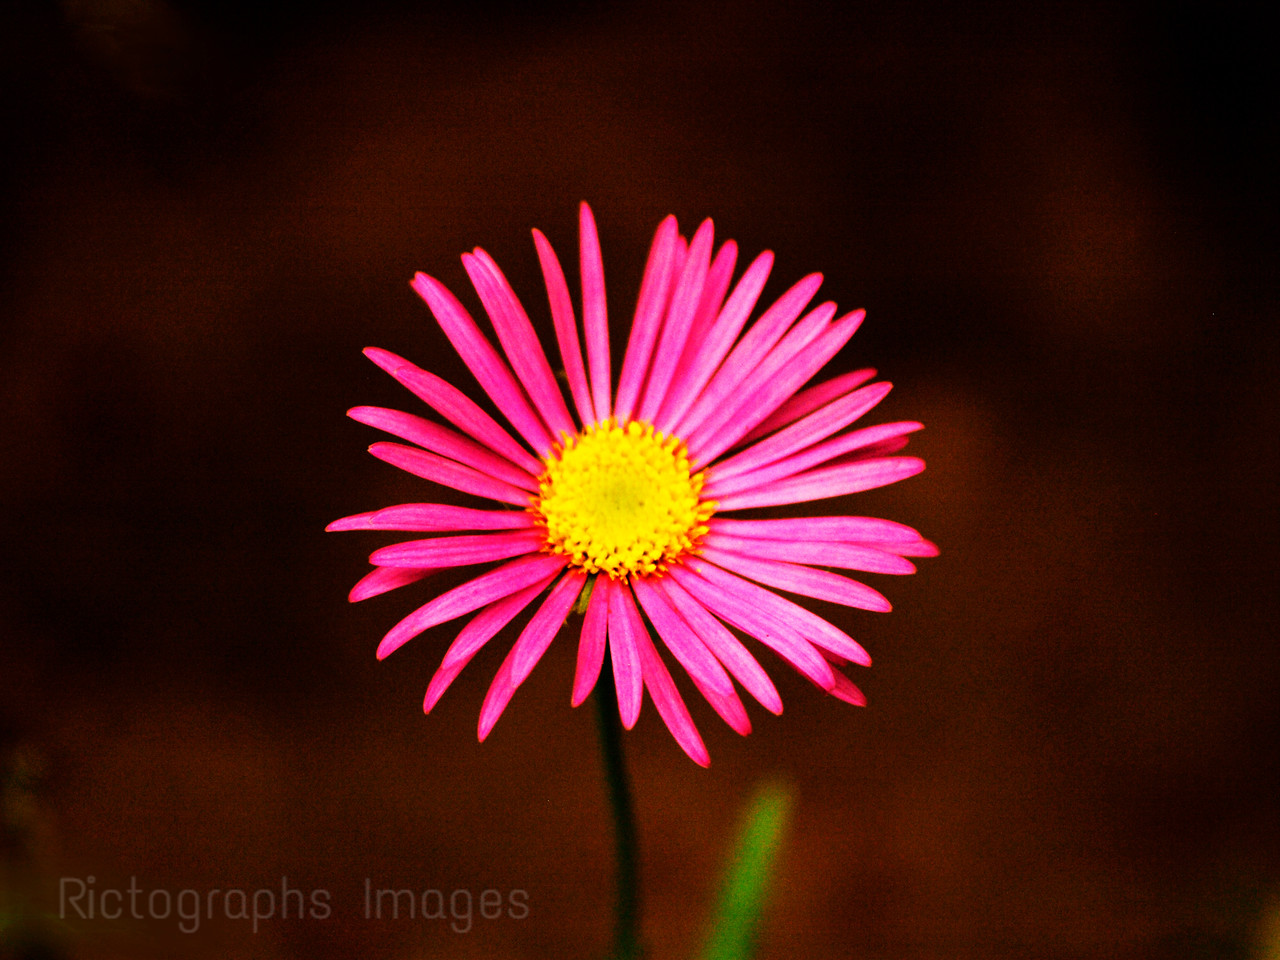 Aster Beauty, Rictographs Images